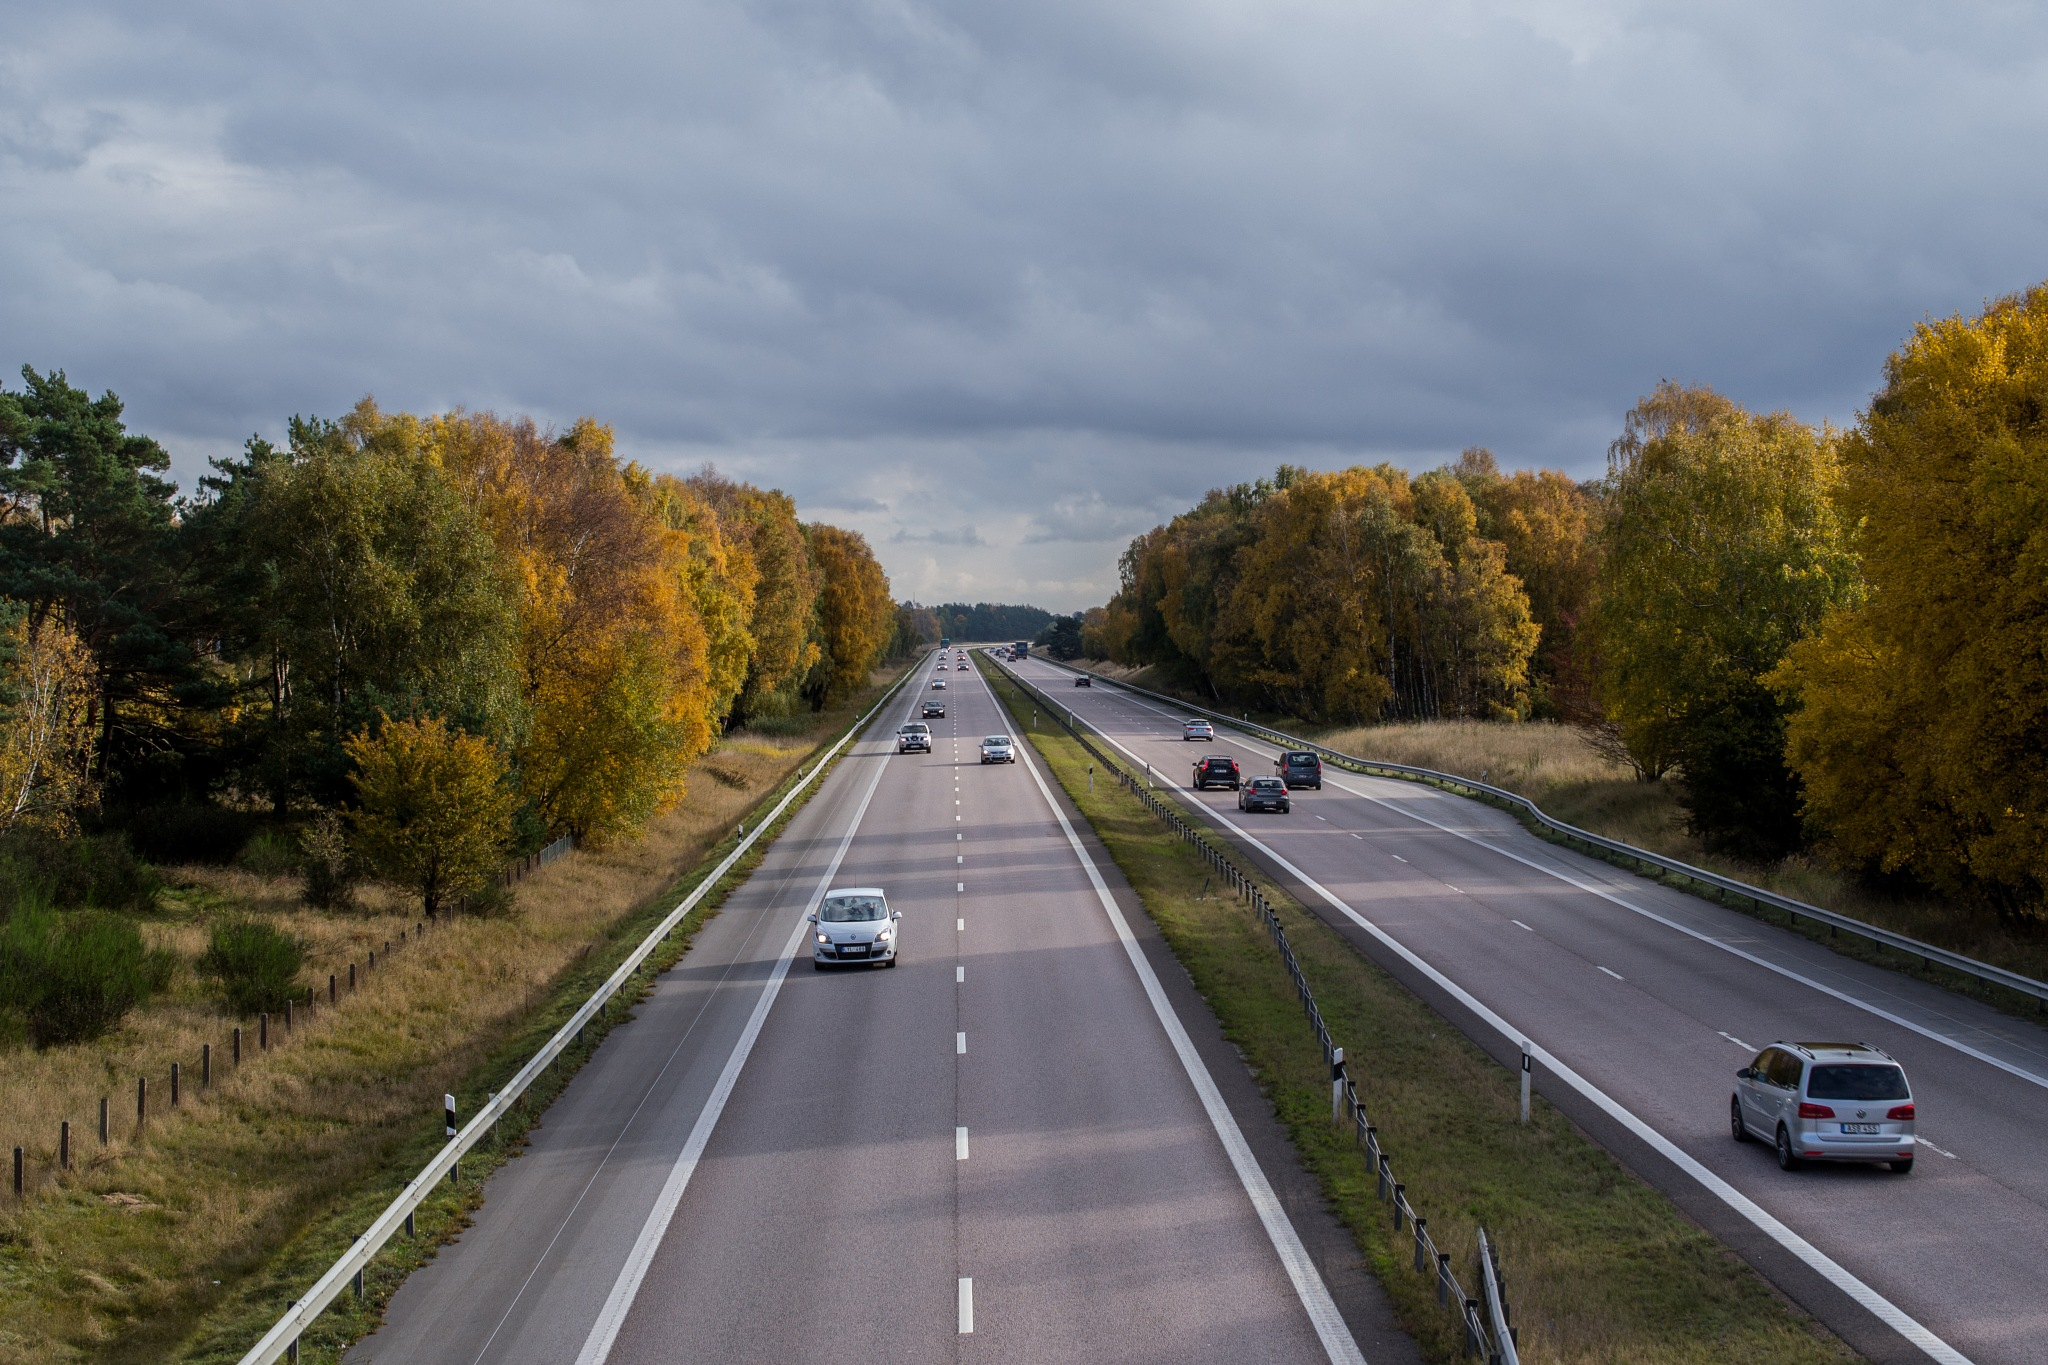 Highway by AnnelieConca